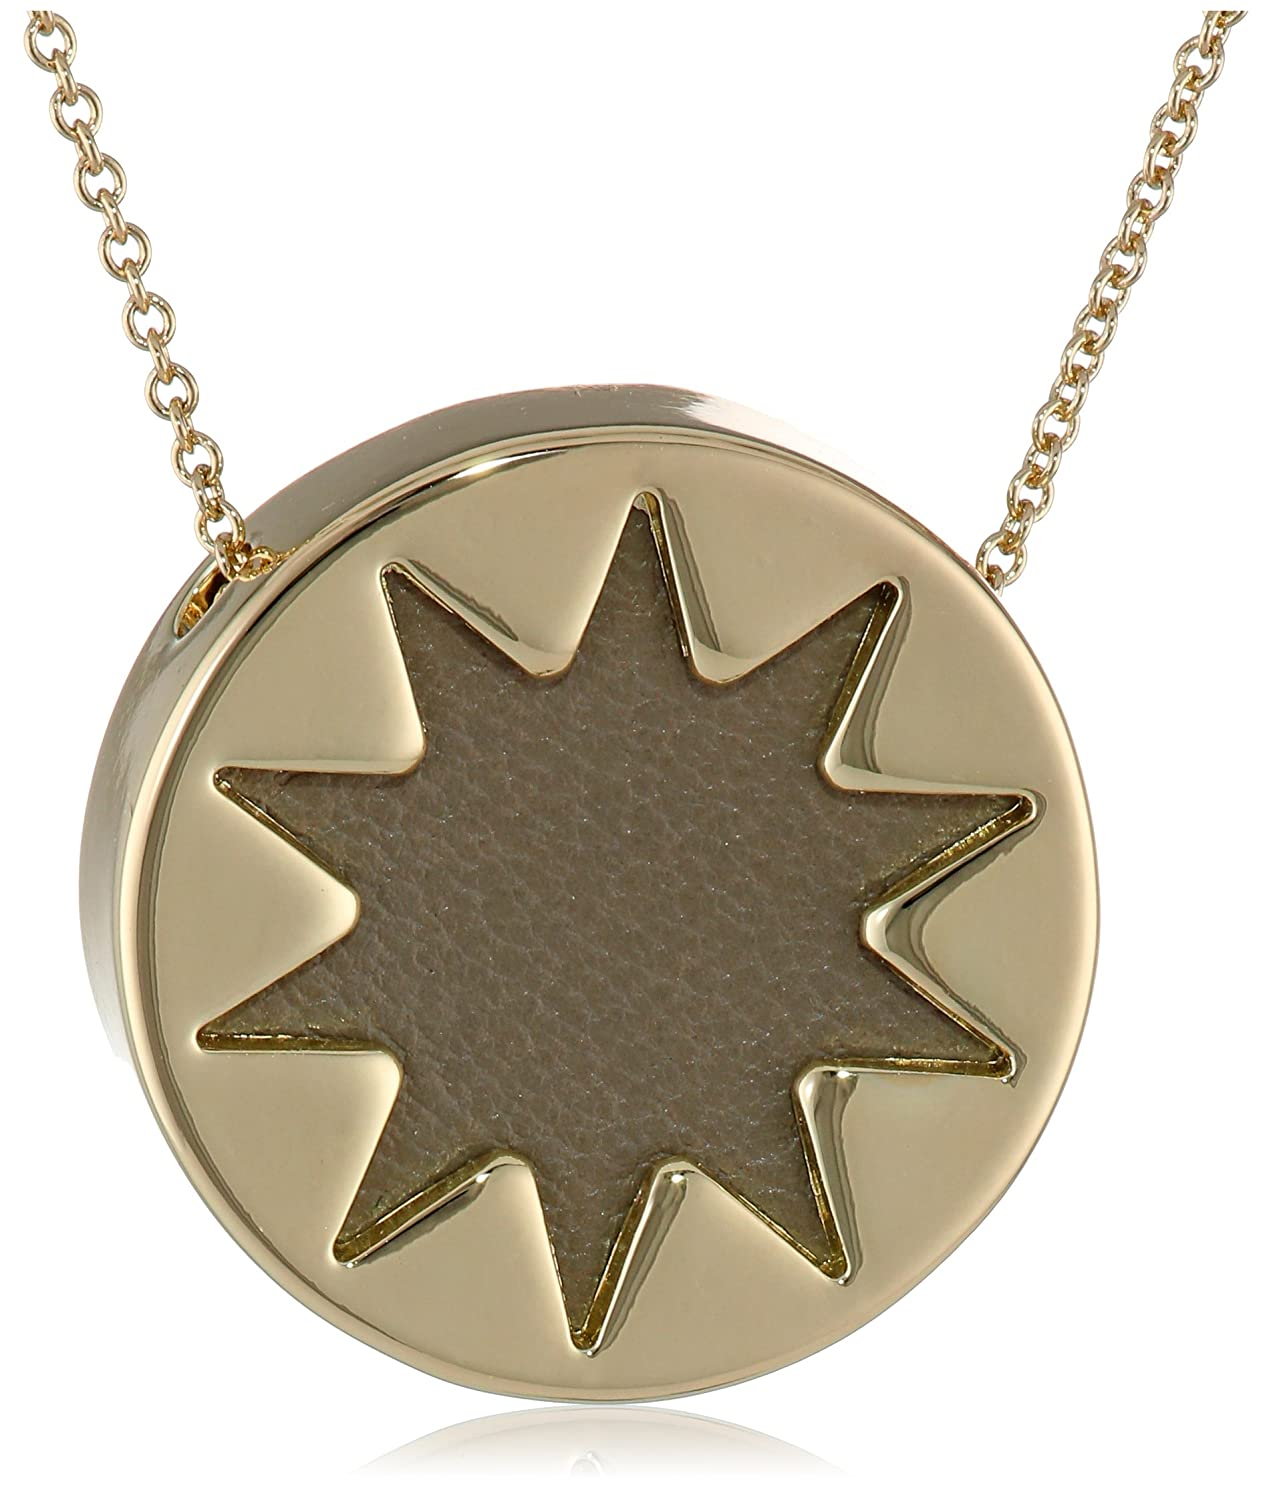 aefe necklace sunburst rose kelly love lisa products kellys gold image s